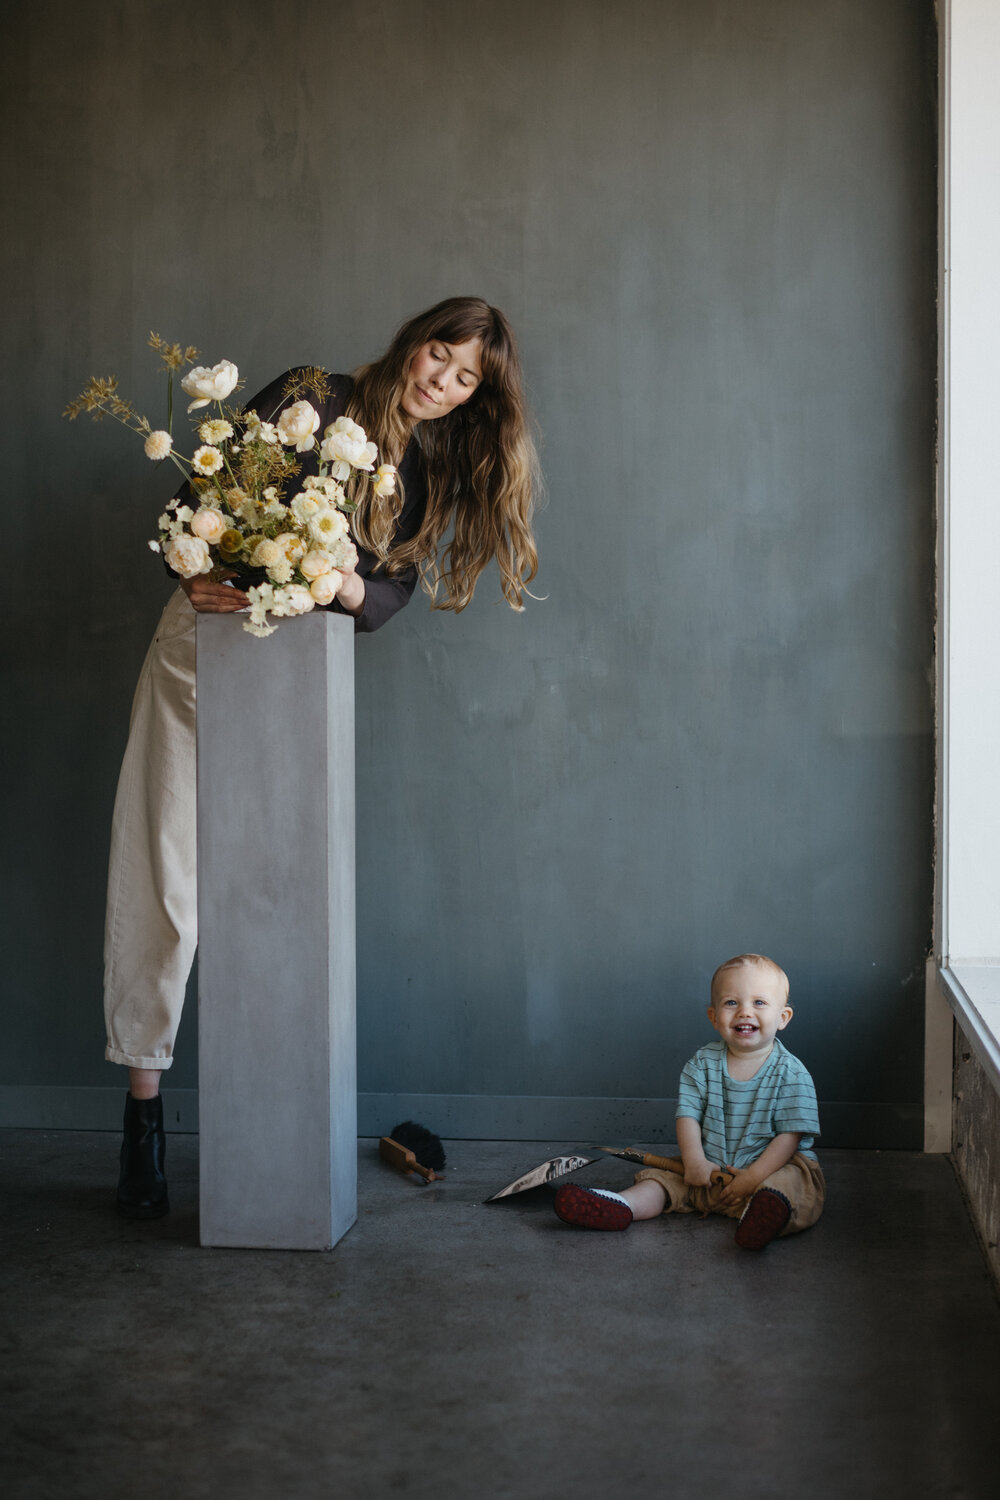 Alyssa of Flower Minds teaches how to become a florist